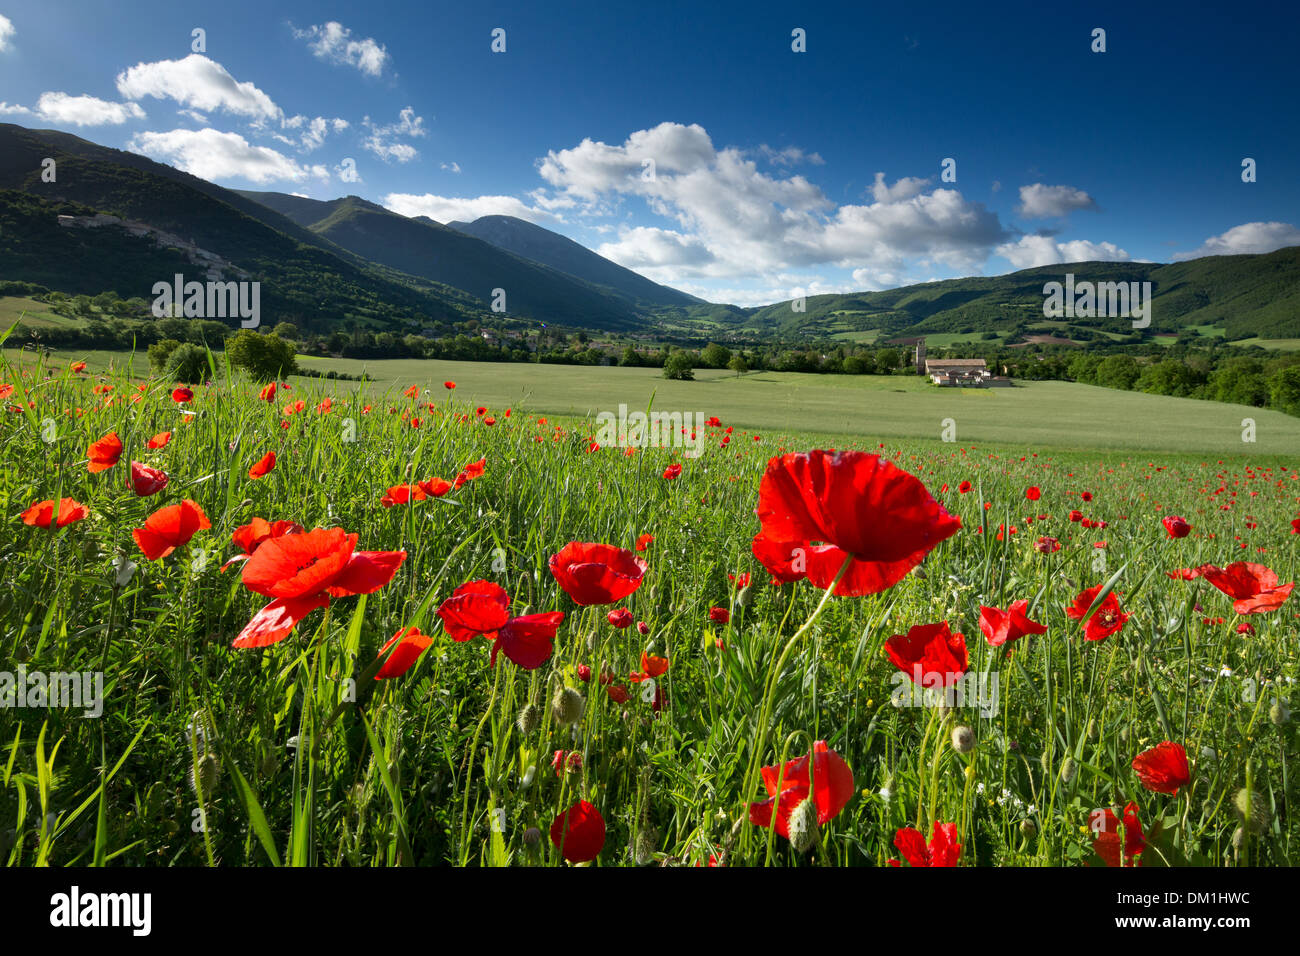 Domaine nr Campi, Ombrie, Italie Photo Stock